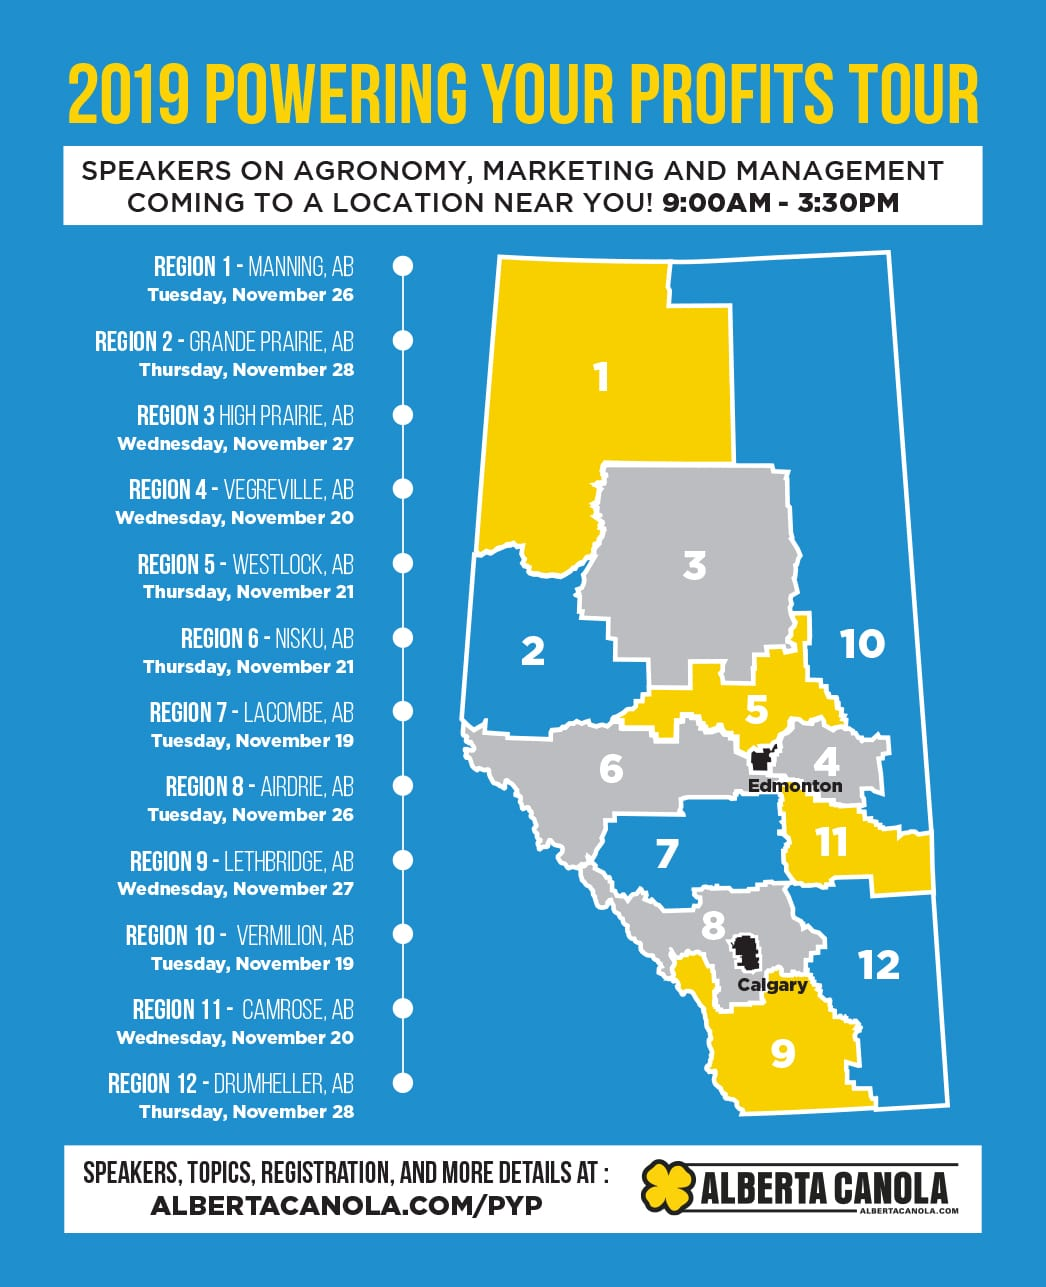 2019 Powering Your Profits Tour: Speakers on Agronomy, Marketing and Management coming to a location near you! 9:00AM to 3:30PM. Details at albertacanola.com/pyp